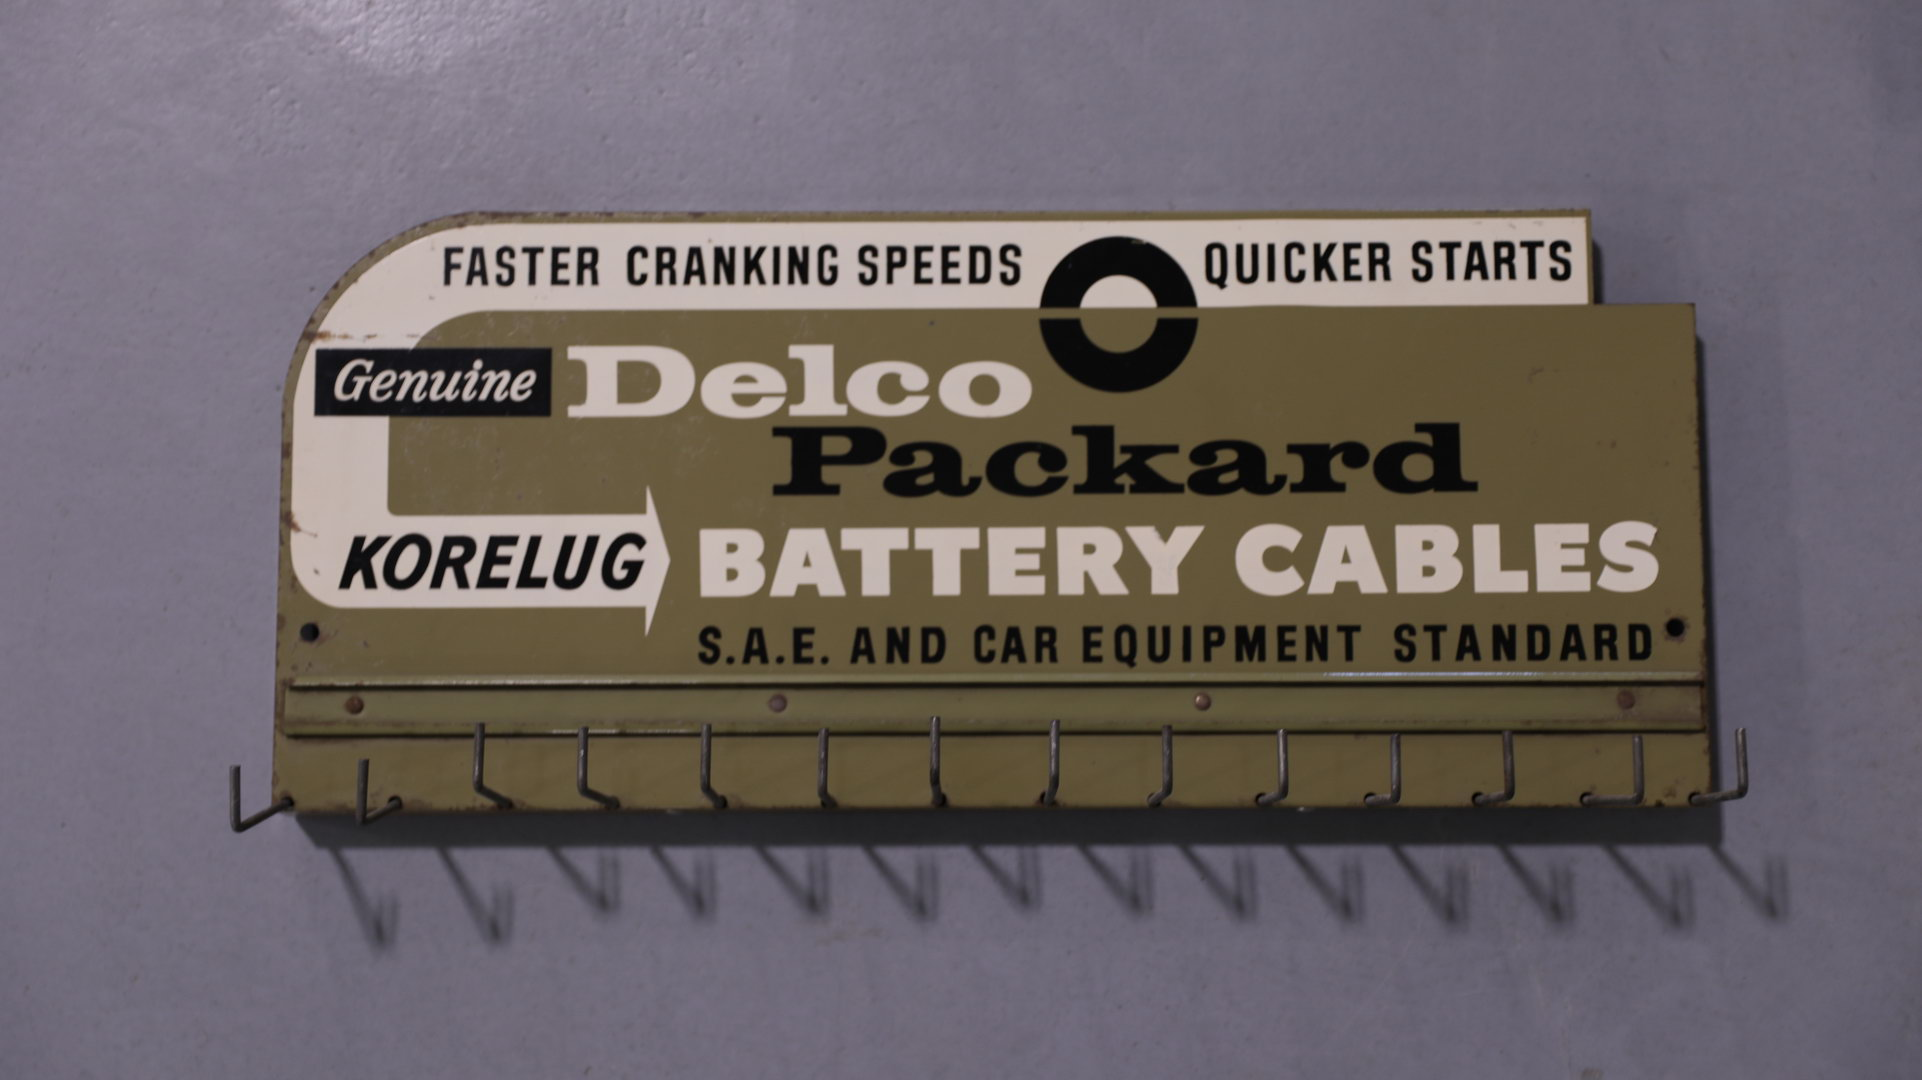 Delco Packard Battery Cable Display Sign